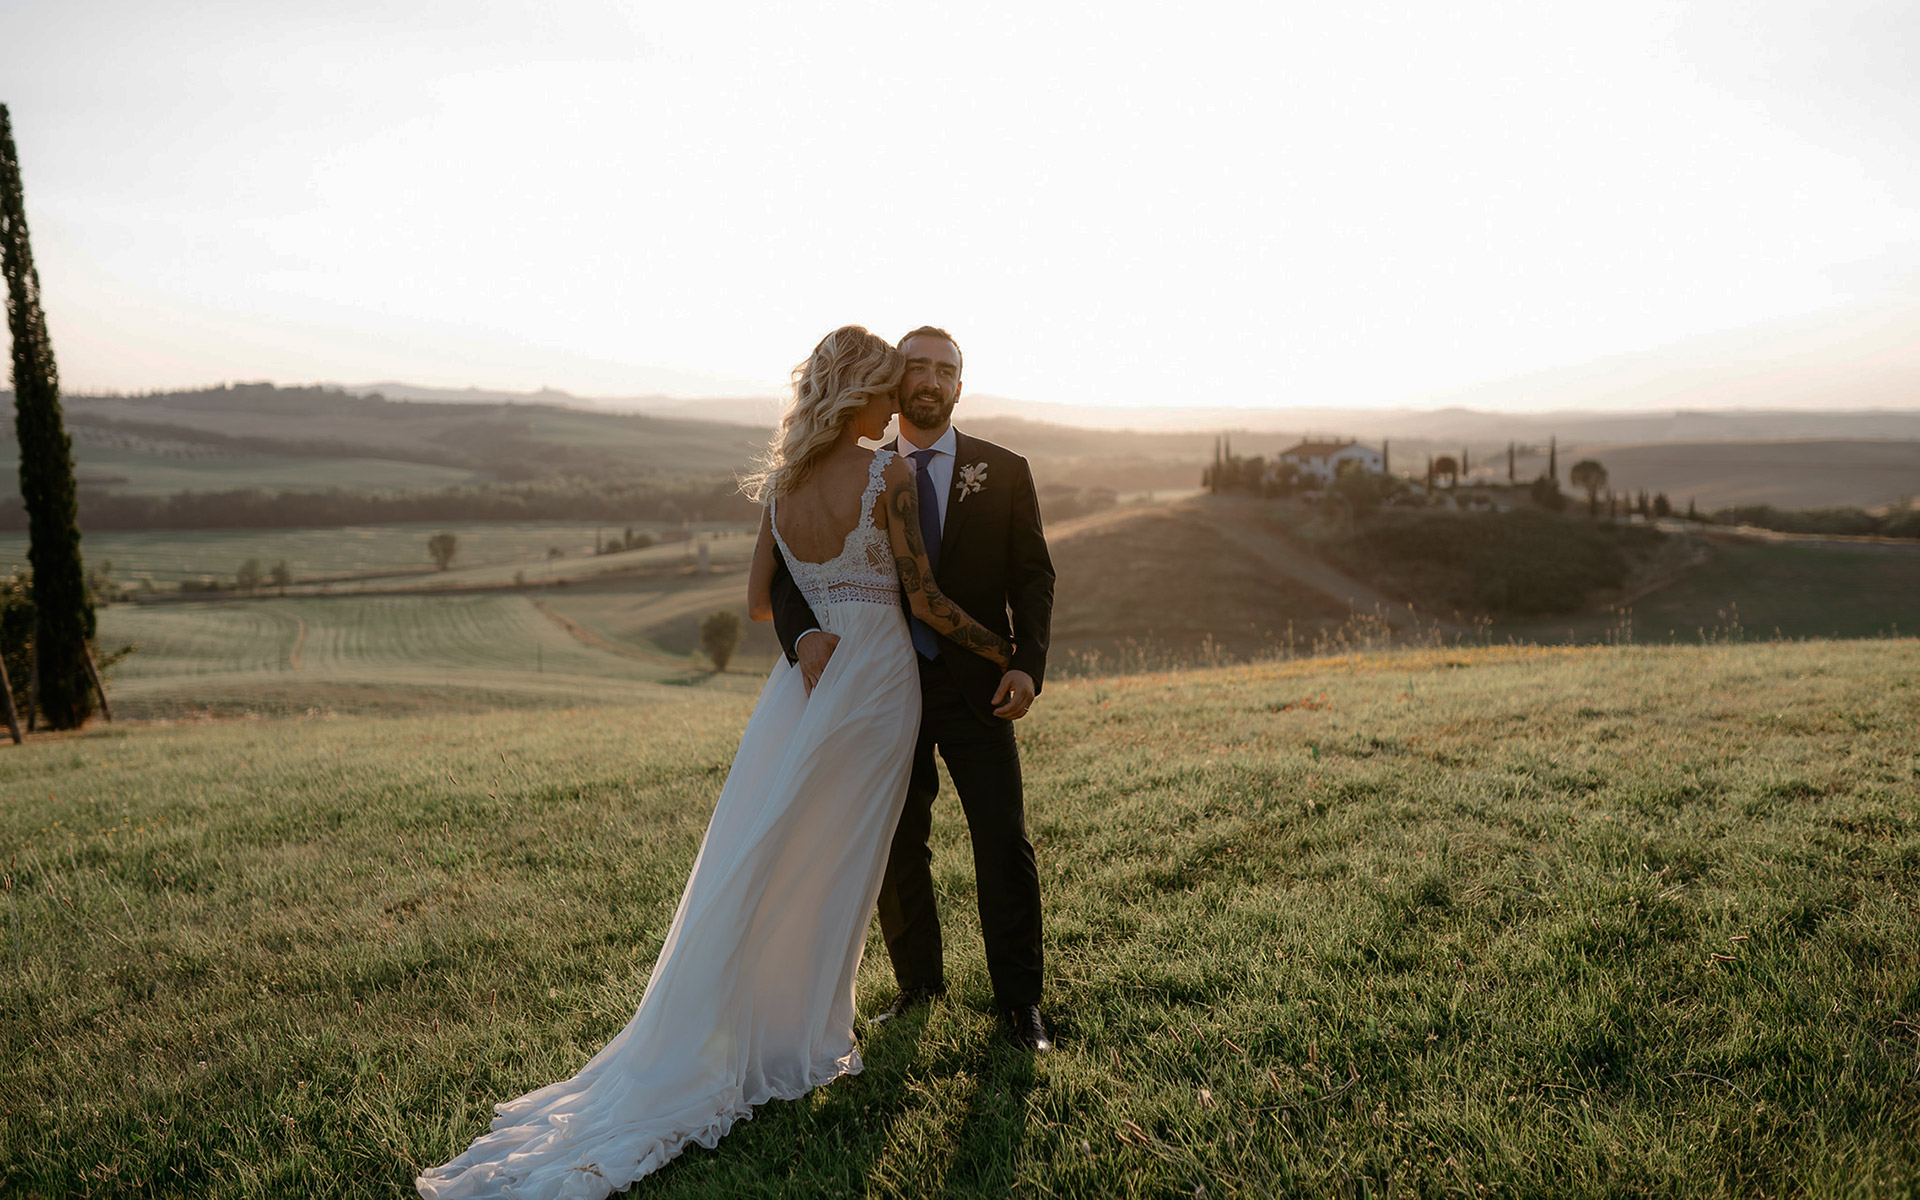 A breathless wedding venue in Tuscany